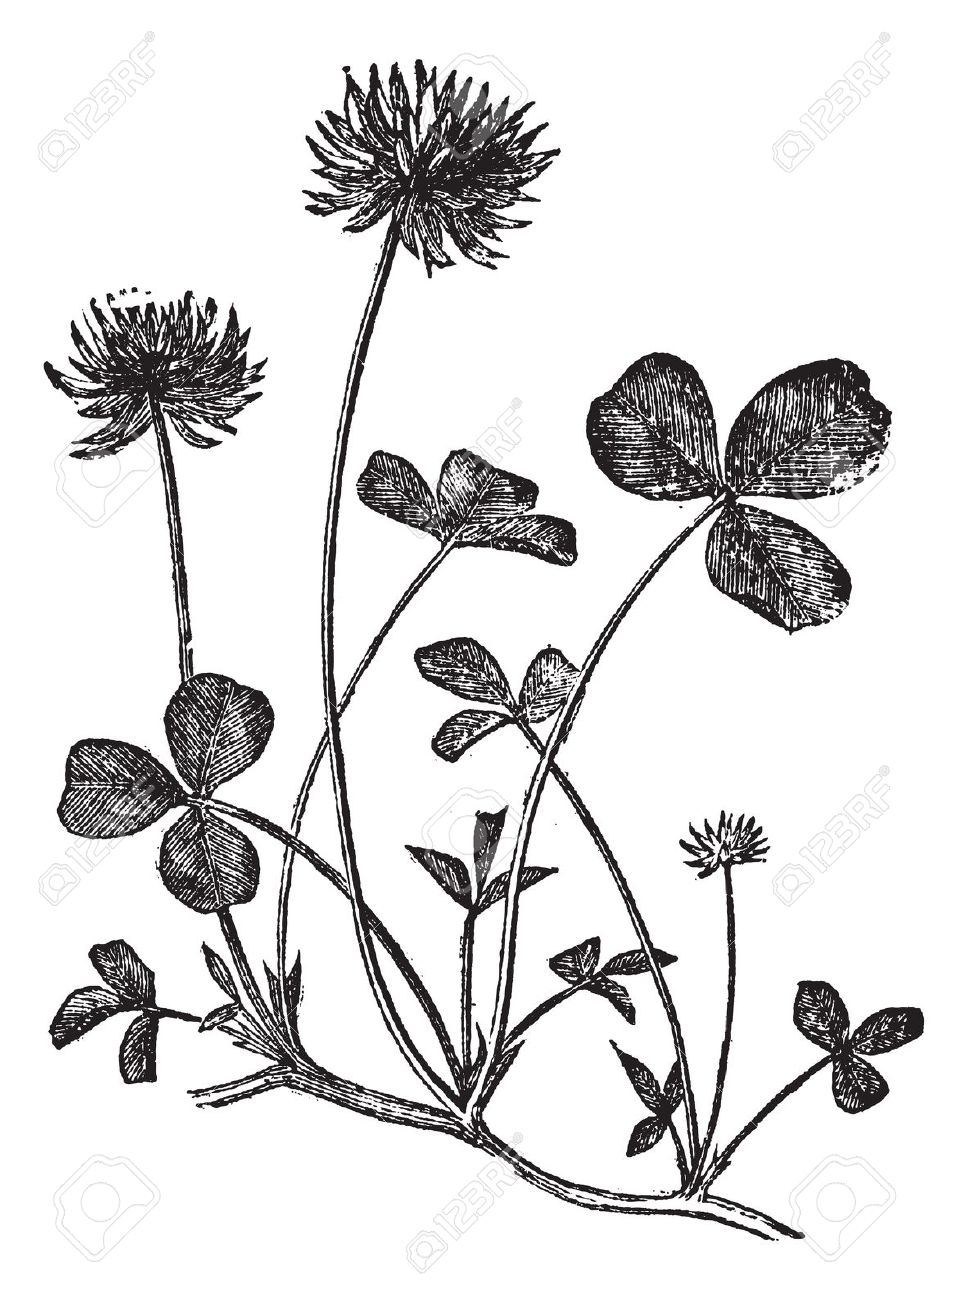 White Clover Or Trifolium Repens, Vintage Engraved Illustration.